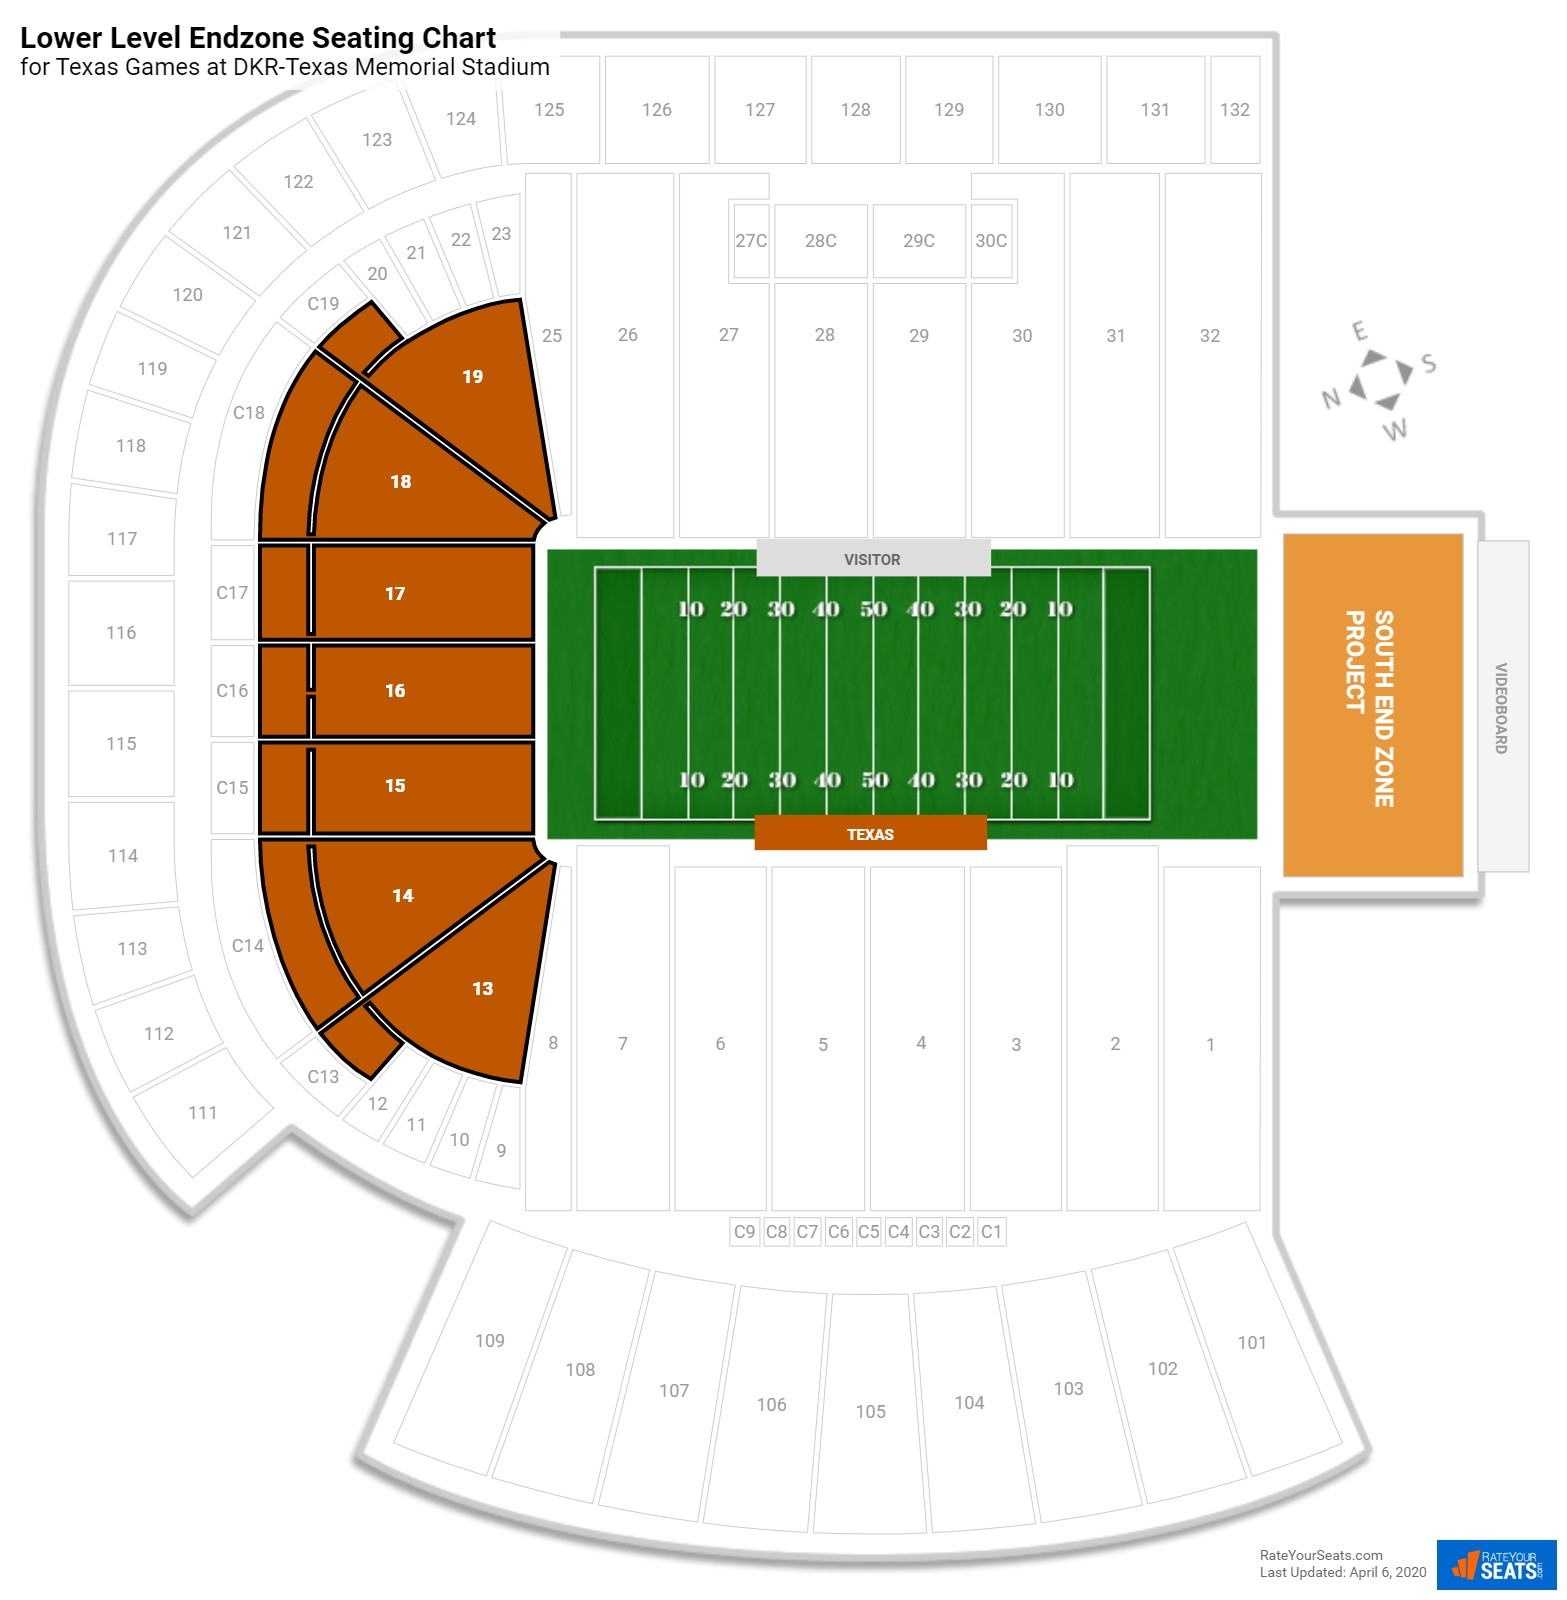 DKR-Texas Memorial Stadium Lower Level Endzone seating chart